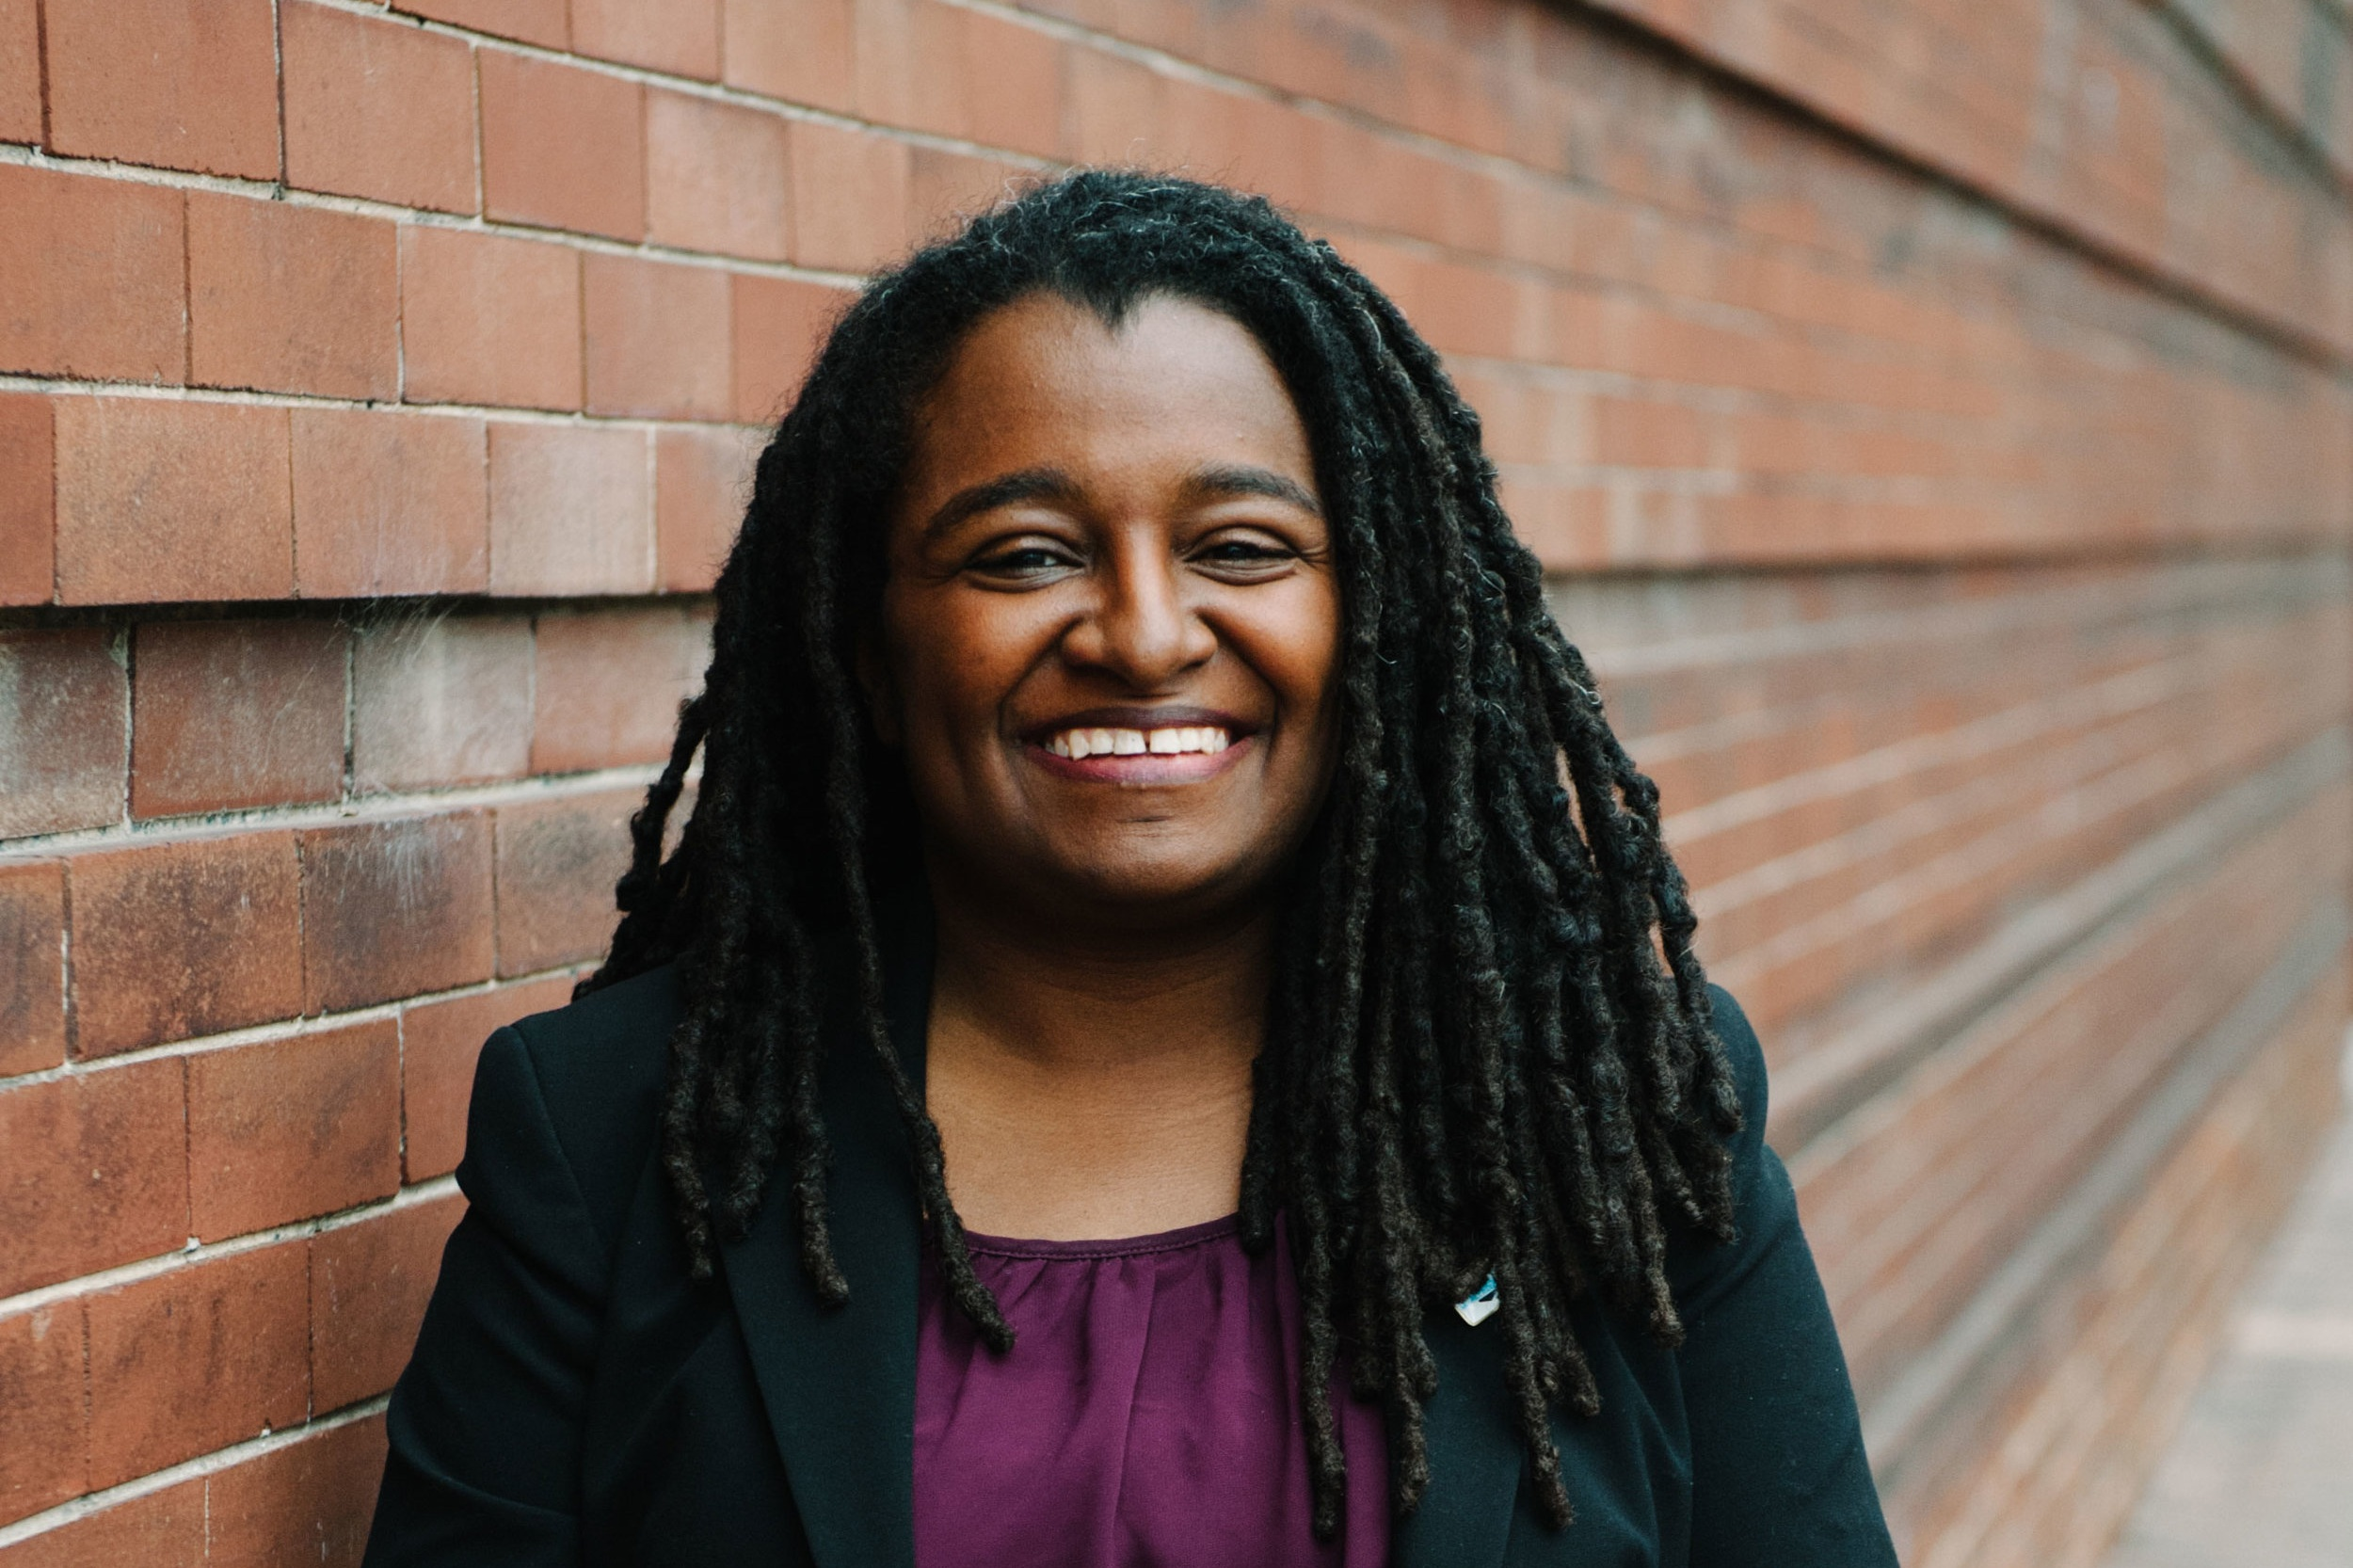 """Jillian Johnson - """"As Mayor Pro Tem, of Durham City Council, I know what it takes to lead a diverse city, to hear all voices and to take bold action. That's why I'm proud to support Saige Martin in his run for Raleigh City Council. As a leader in Durham, we need more visionary partners in Raleigh to help build a shared vision for the Triangle. Saige has already shown me his willingness to do the hard work to build a partnership and to understand the most nuanced issues. Most important, perhaps, is that Saige is humble, accessible, and thinks of every constituent when discussing policy proposals. The city of Raleigh would be lucky to have his leadership."""""""